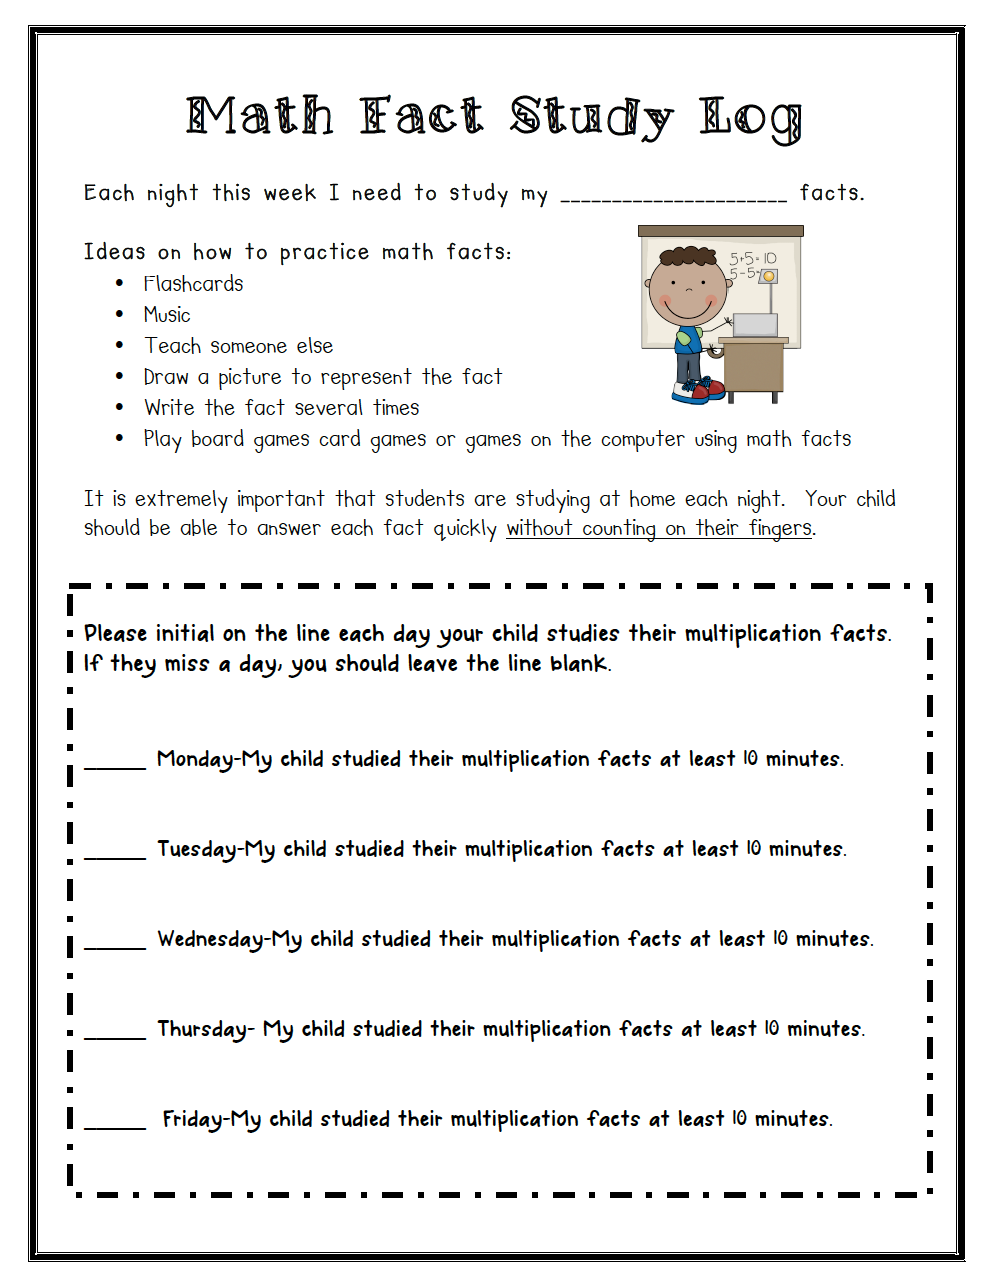 Worksheet Study Math Facts math fact study log teaching ideas pinterest facts and study